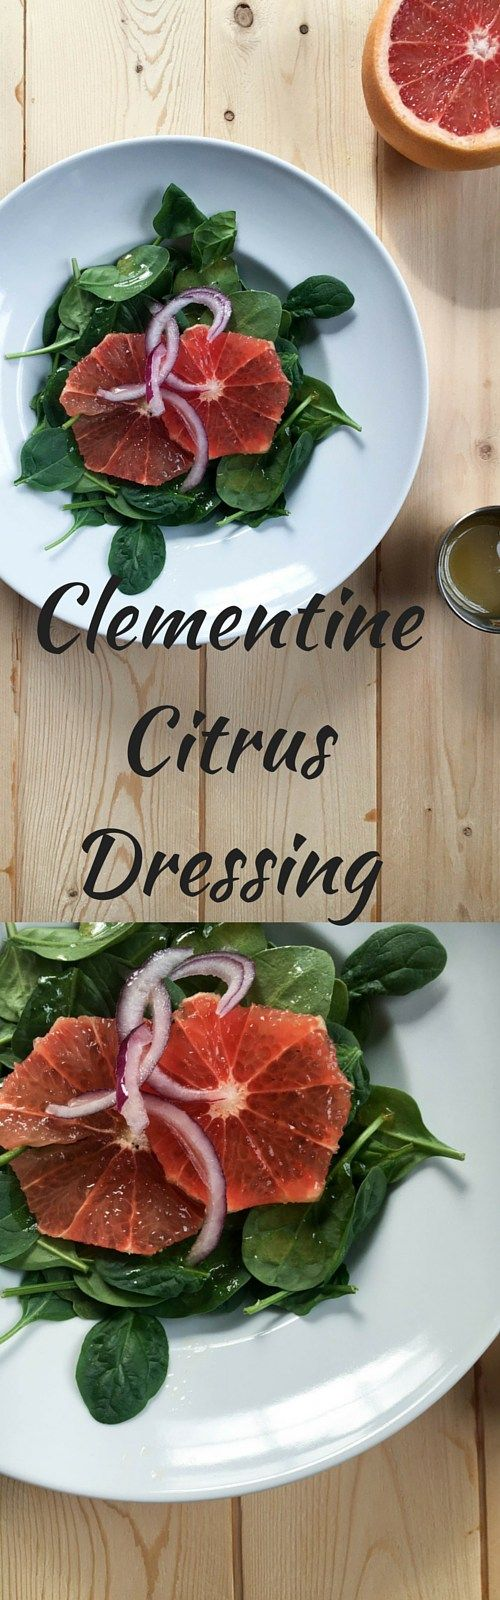 Spinach Salad with Clementine Dressing a refreshing salad with a punch of citrus flavor. This salad dressing recipe can be made in minutes